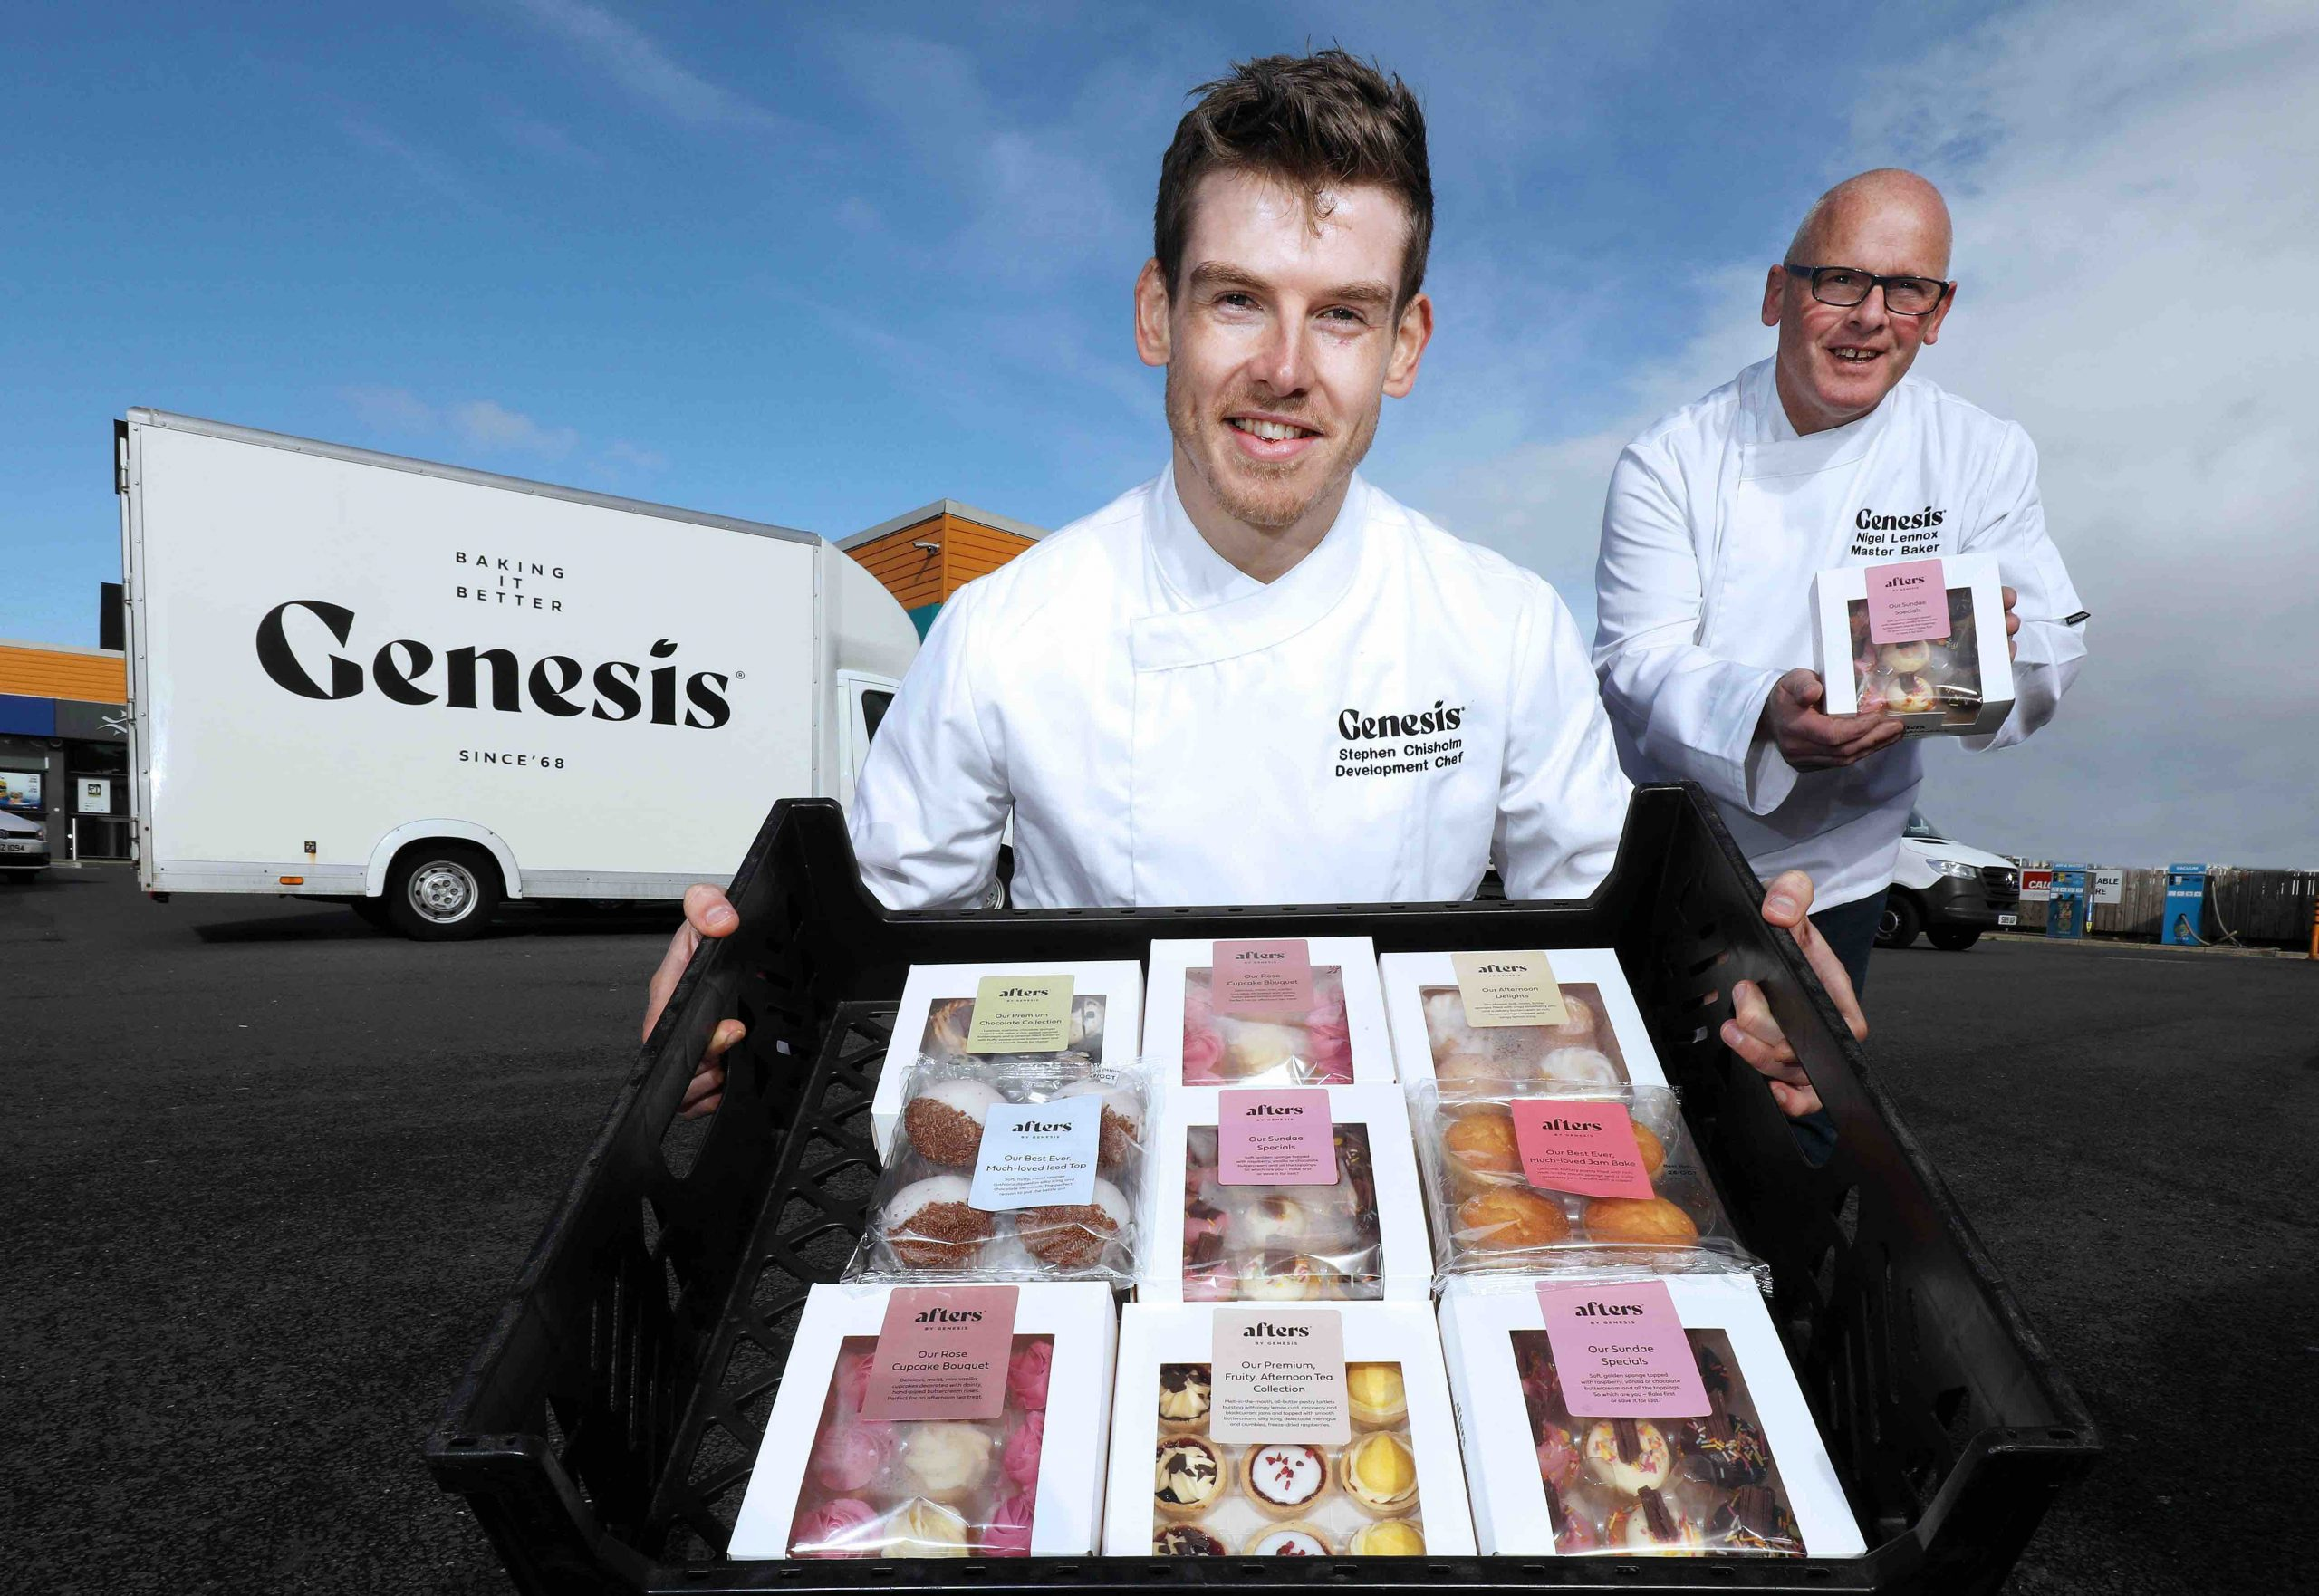 Afters by Genesis teams up with Great Irish Bake Off Winner